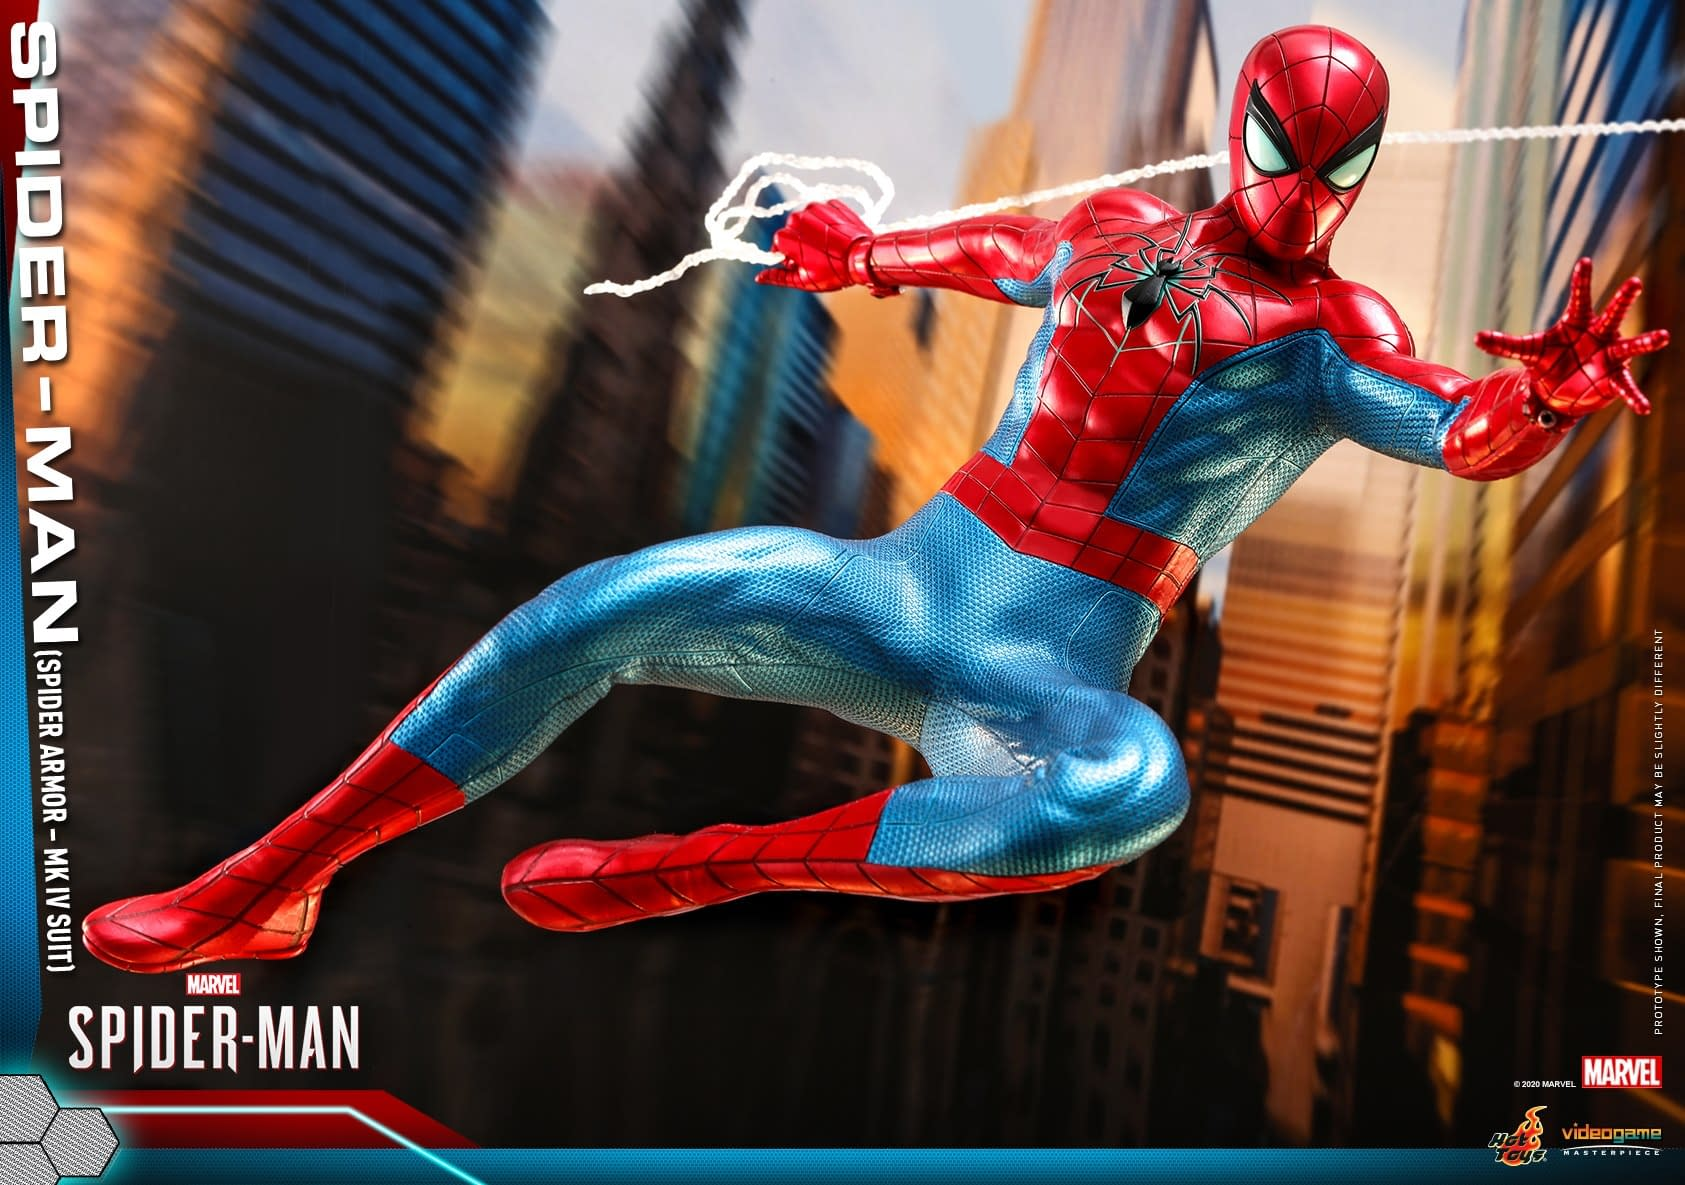 Spider-Man is All New and All Different with MK IV Hot Toys Figures